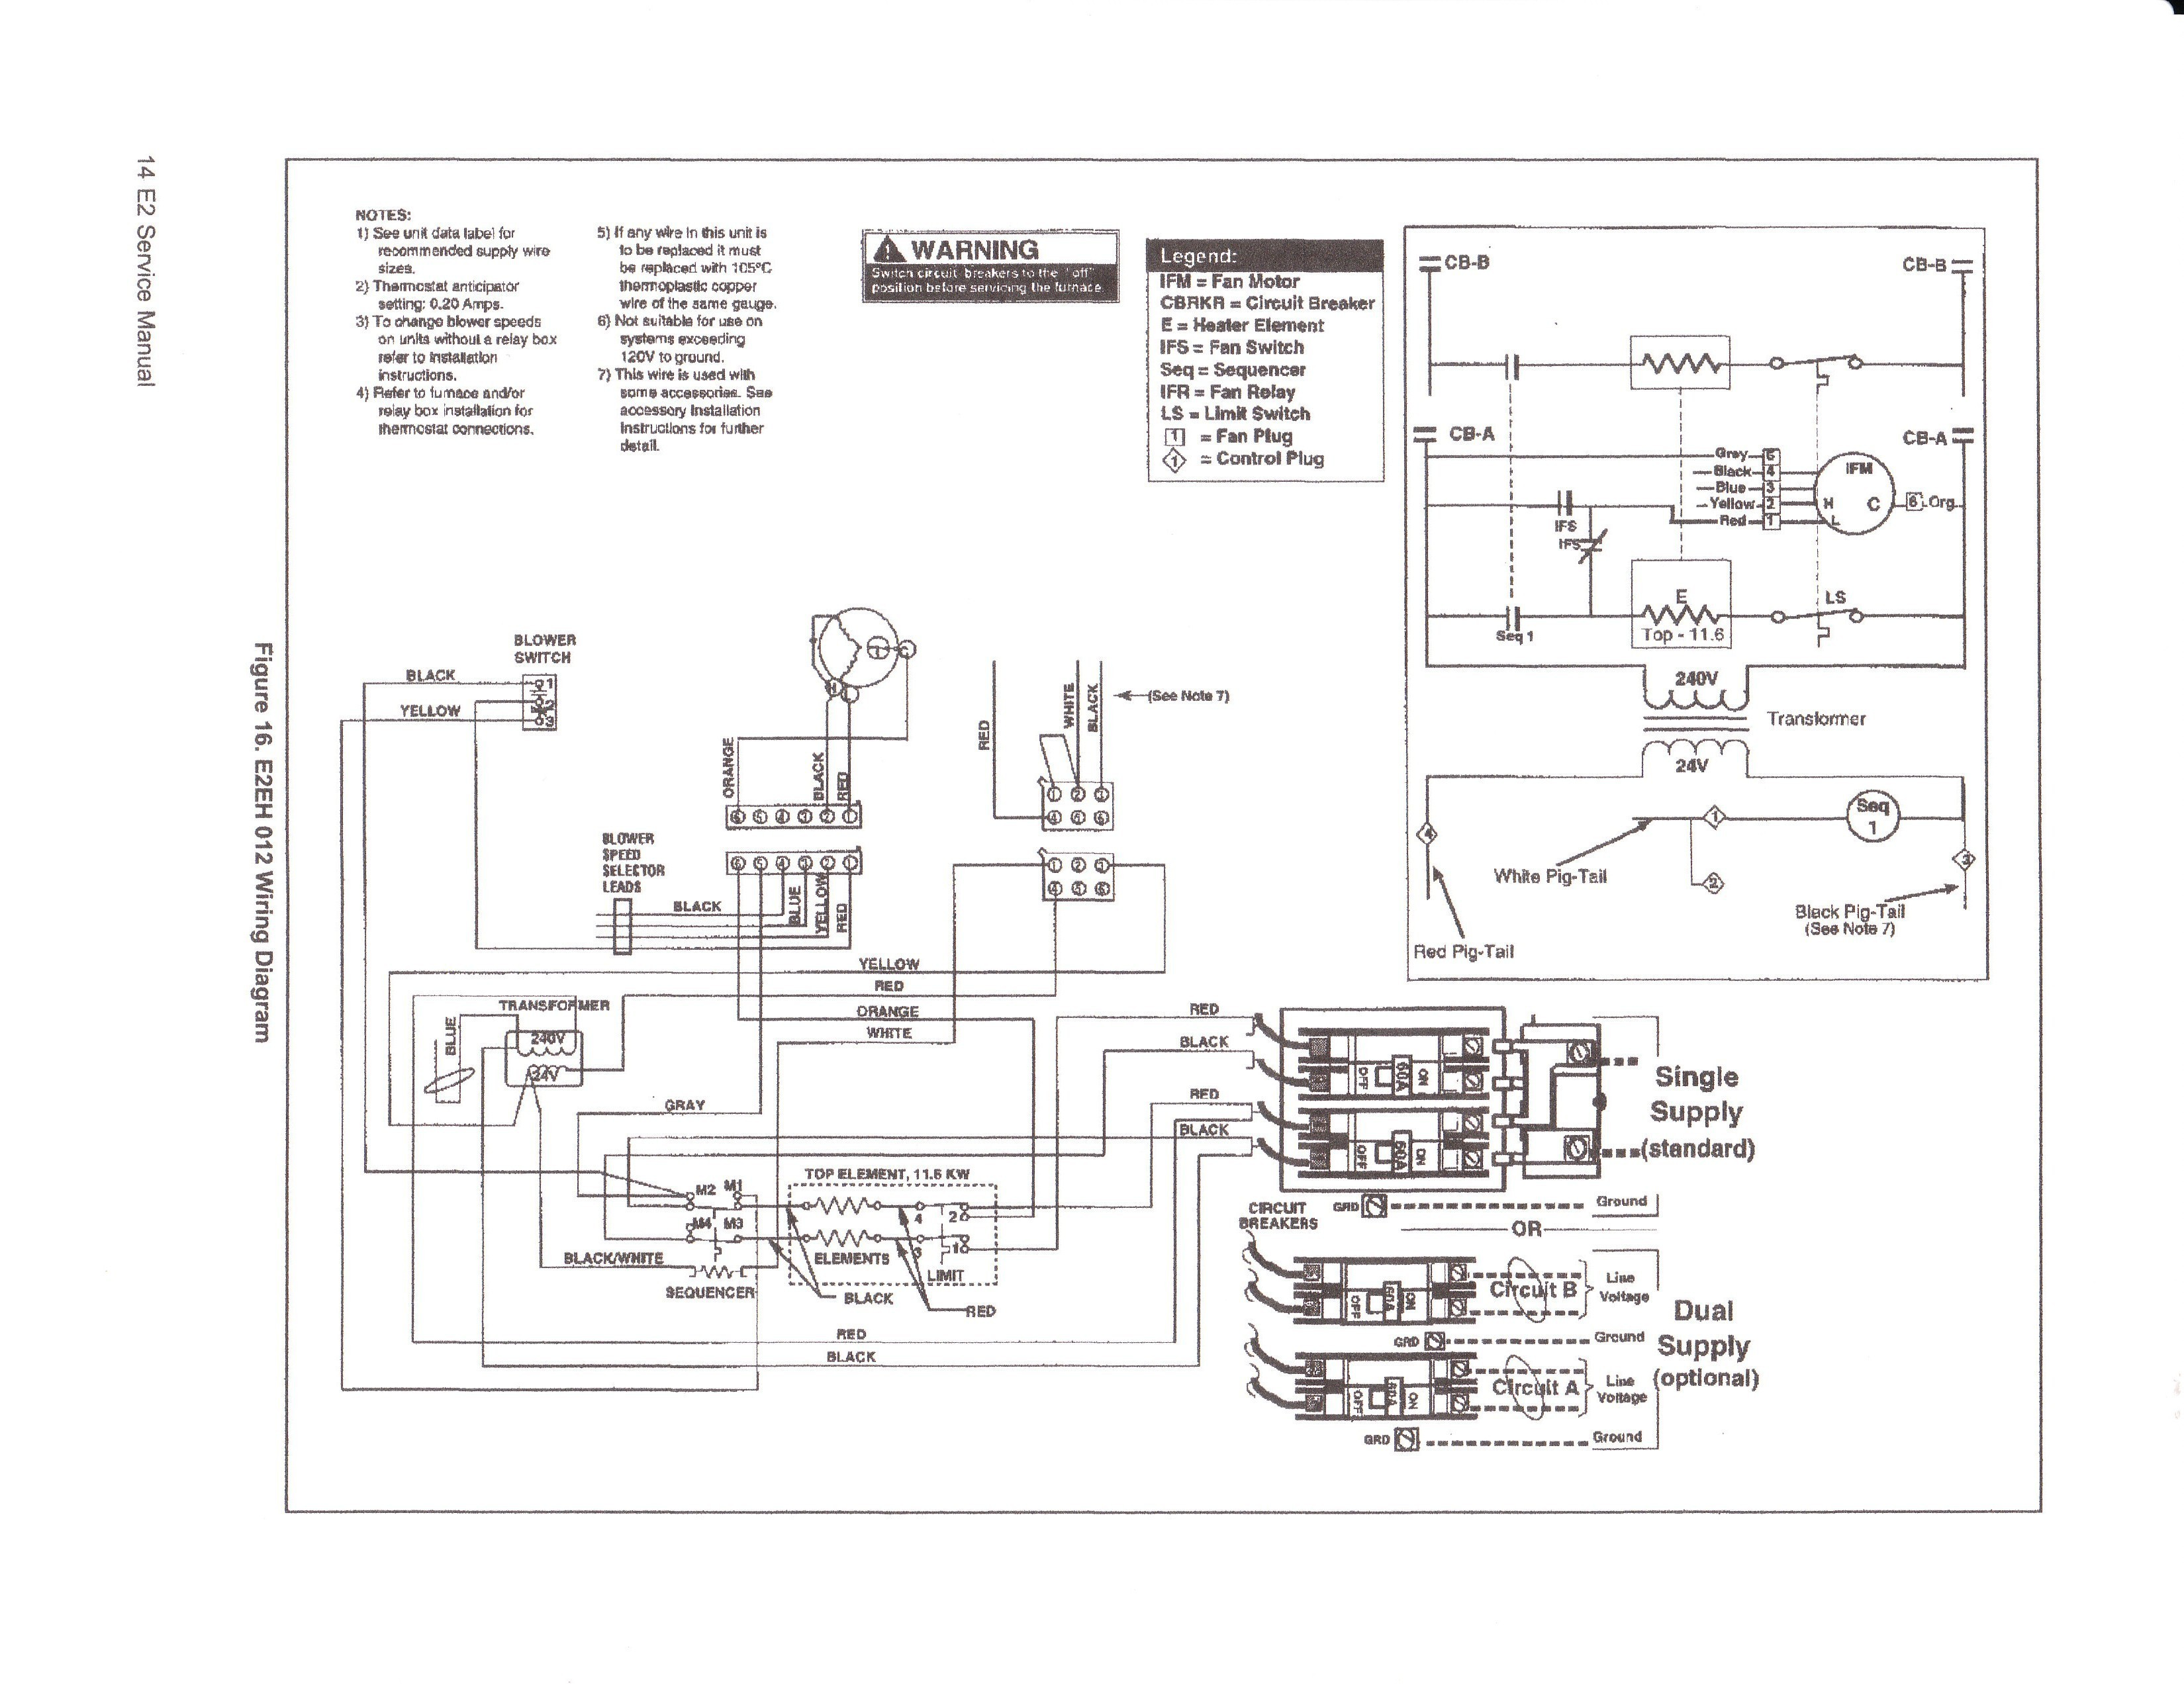 Coleman Wiring Diagram Manual Refrence Awesome Coleman Electric Furnace Wiring Diagram Wiring